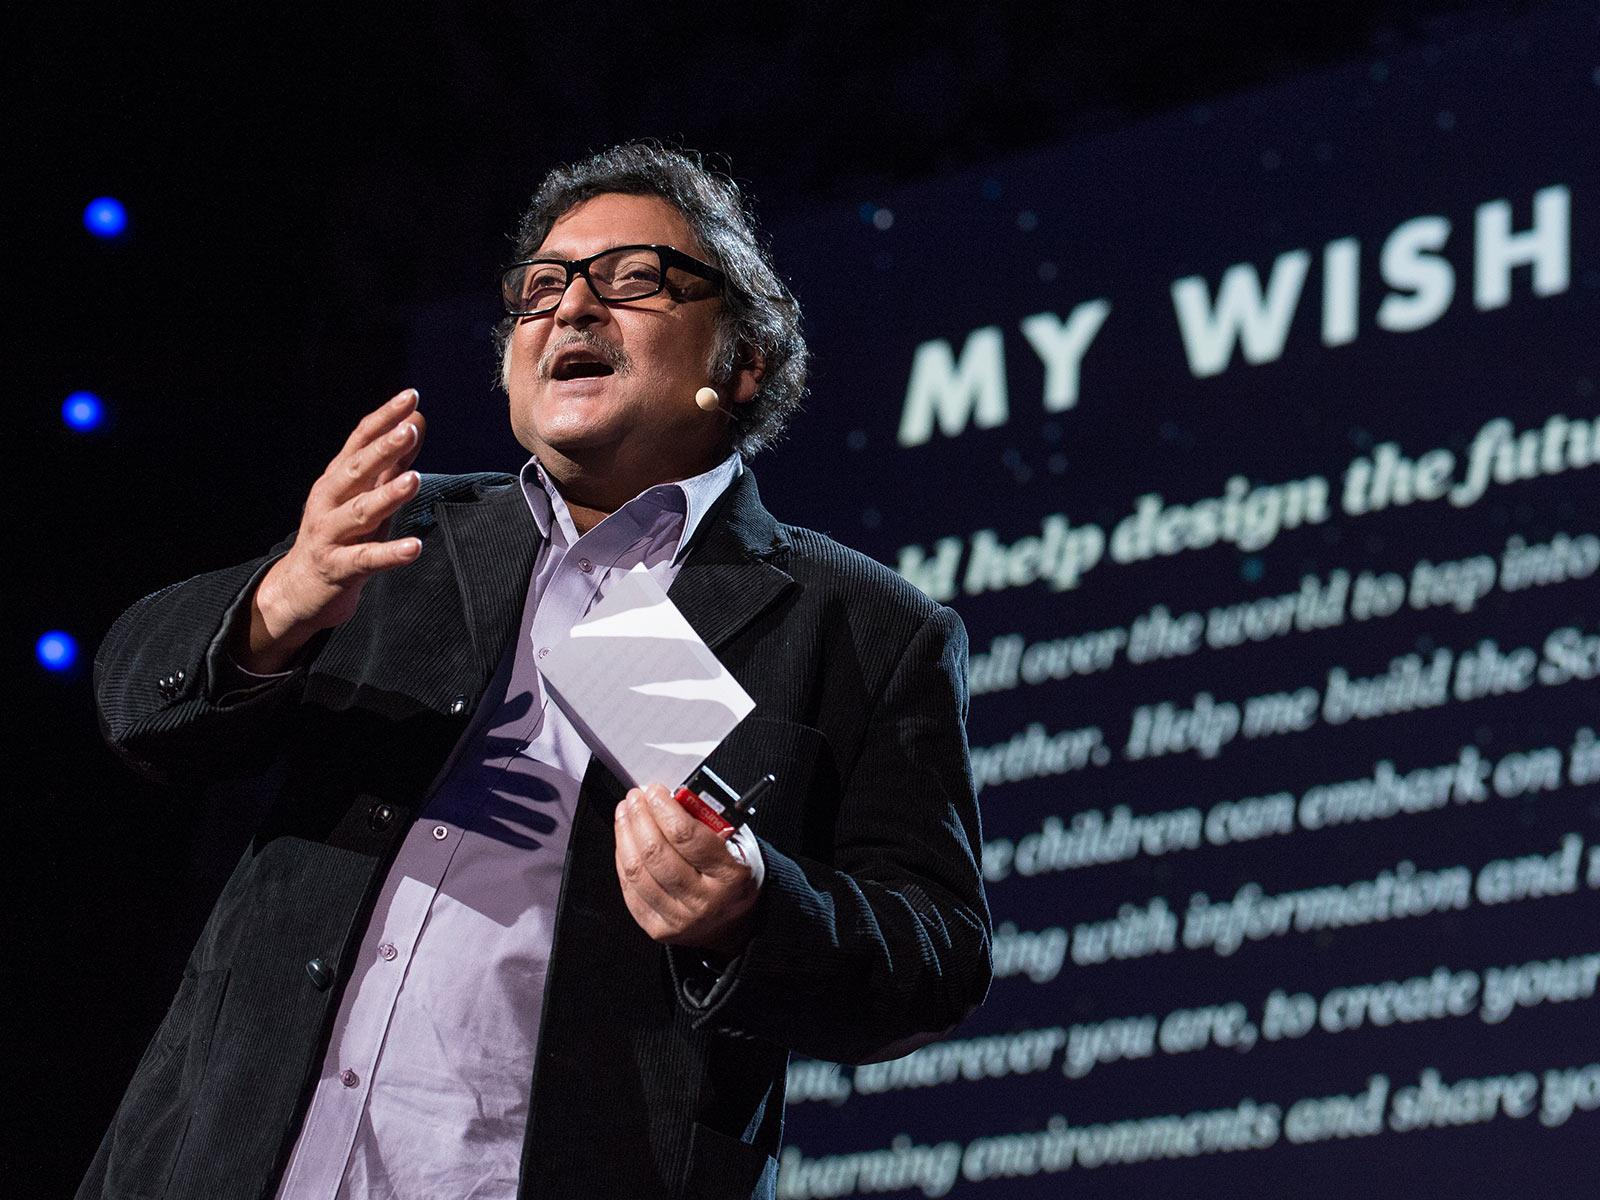 https://www.ted.com/talks/sugata_mitra_build_a_school_in_the_cloud?language=pl